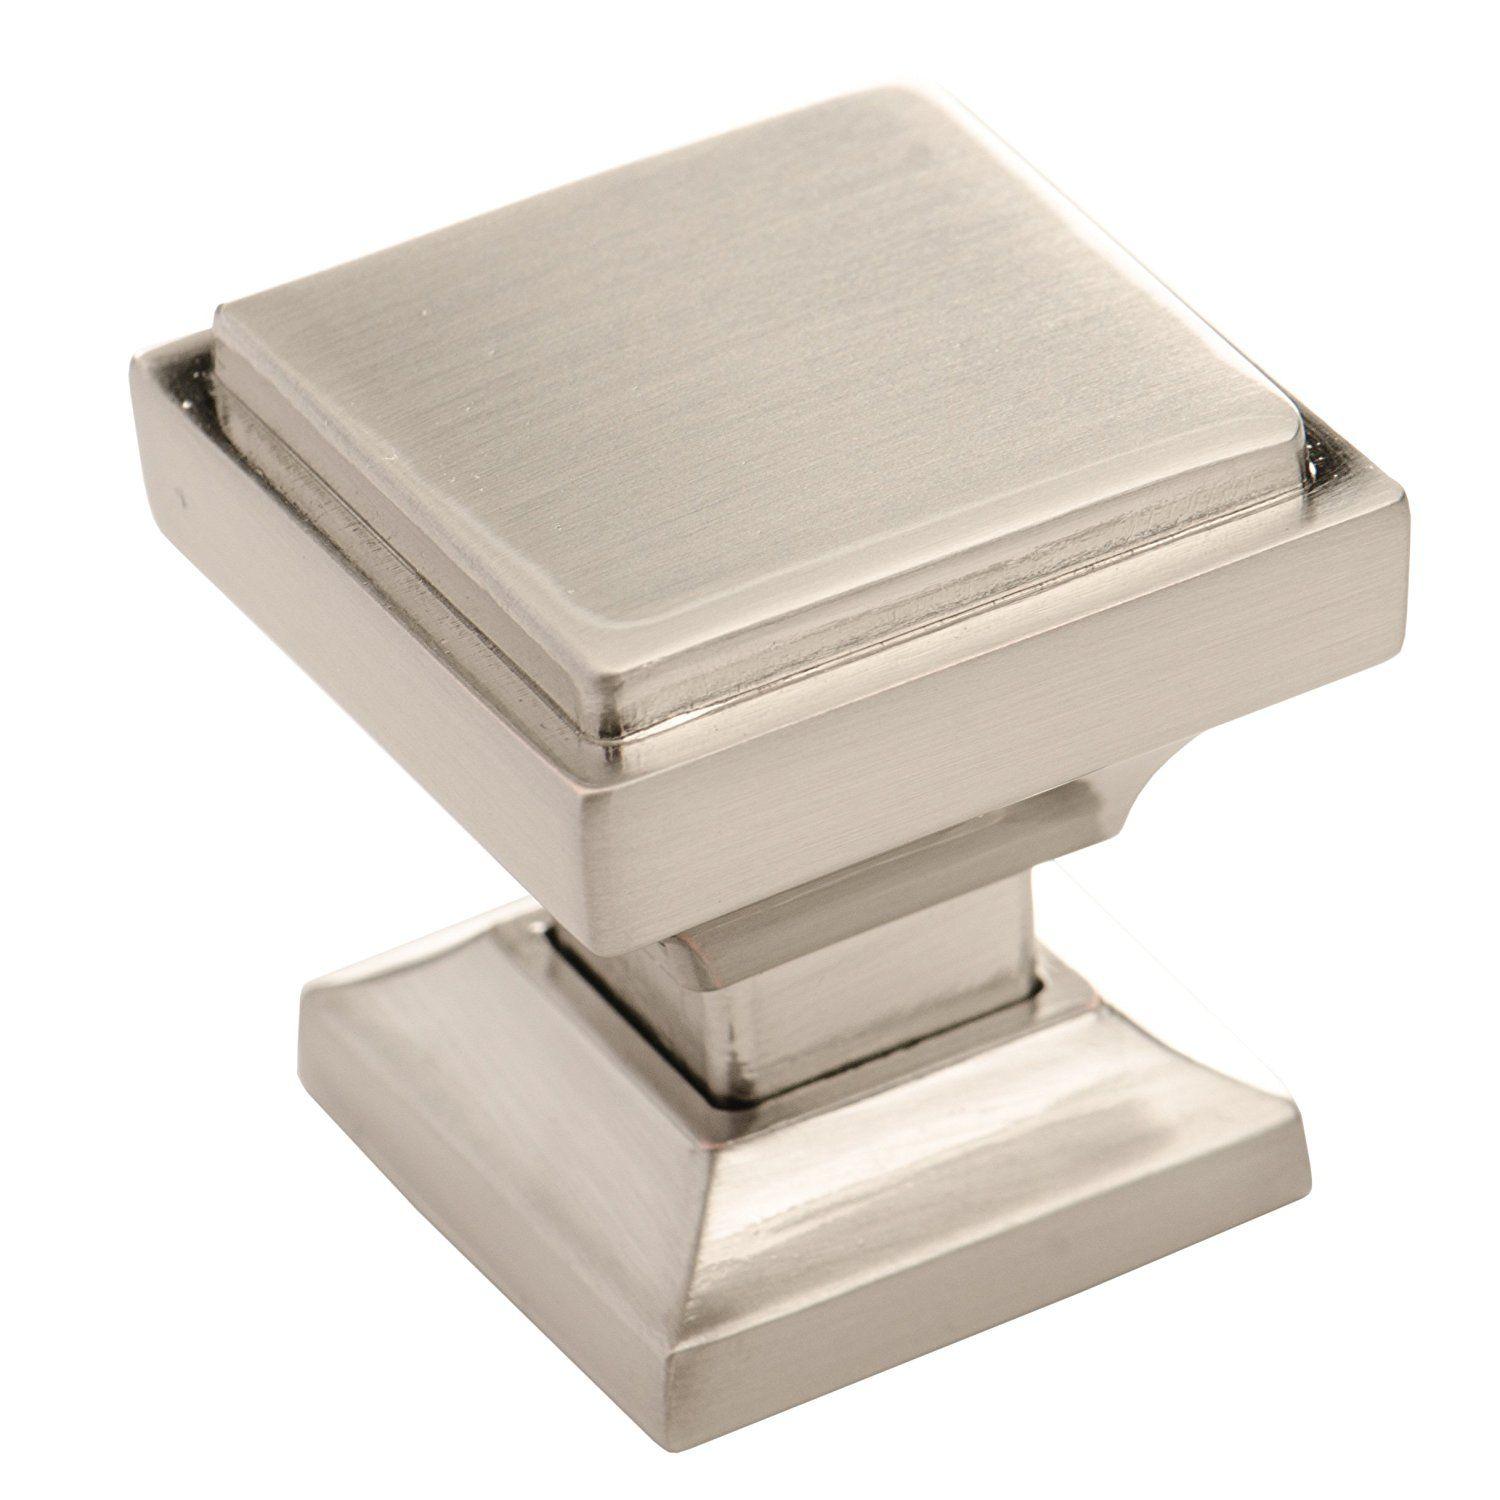 unique hardware cosmasshed cabinet brushed nickel southern screw image satin inch inspirations full sets of by drawer hills bin drawers size cup kitchen pulls bathroom